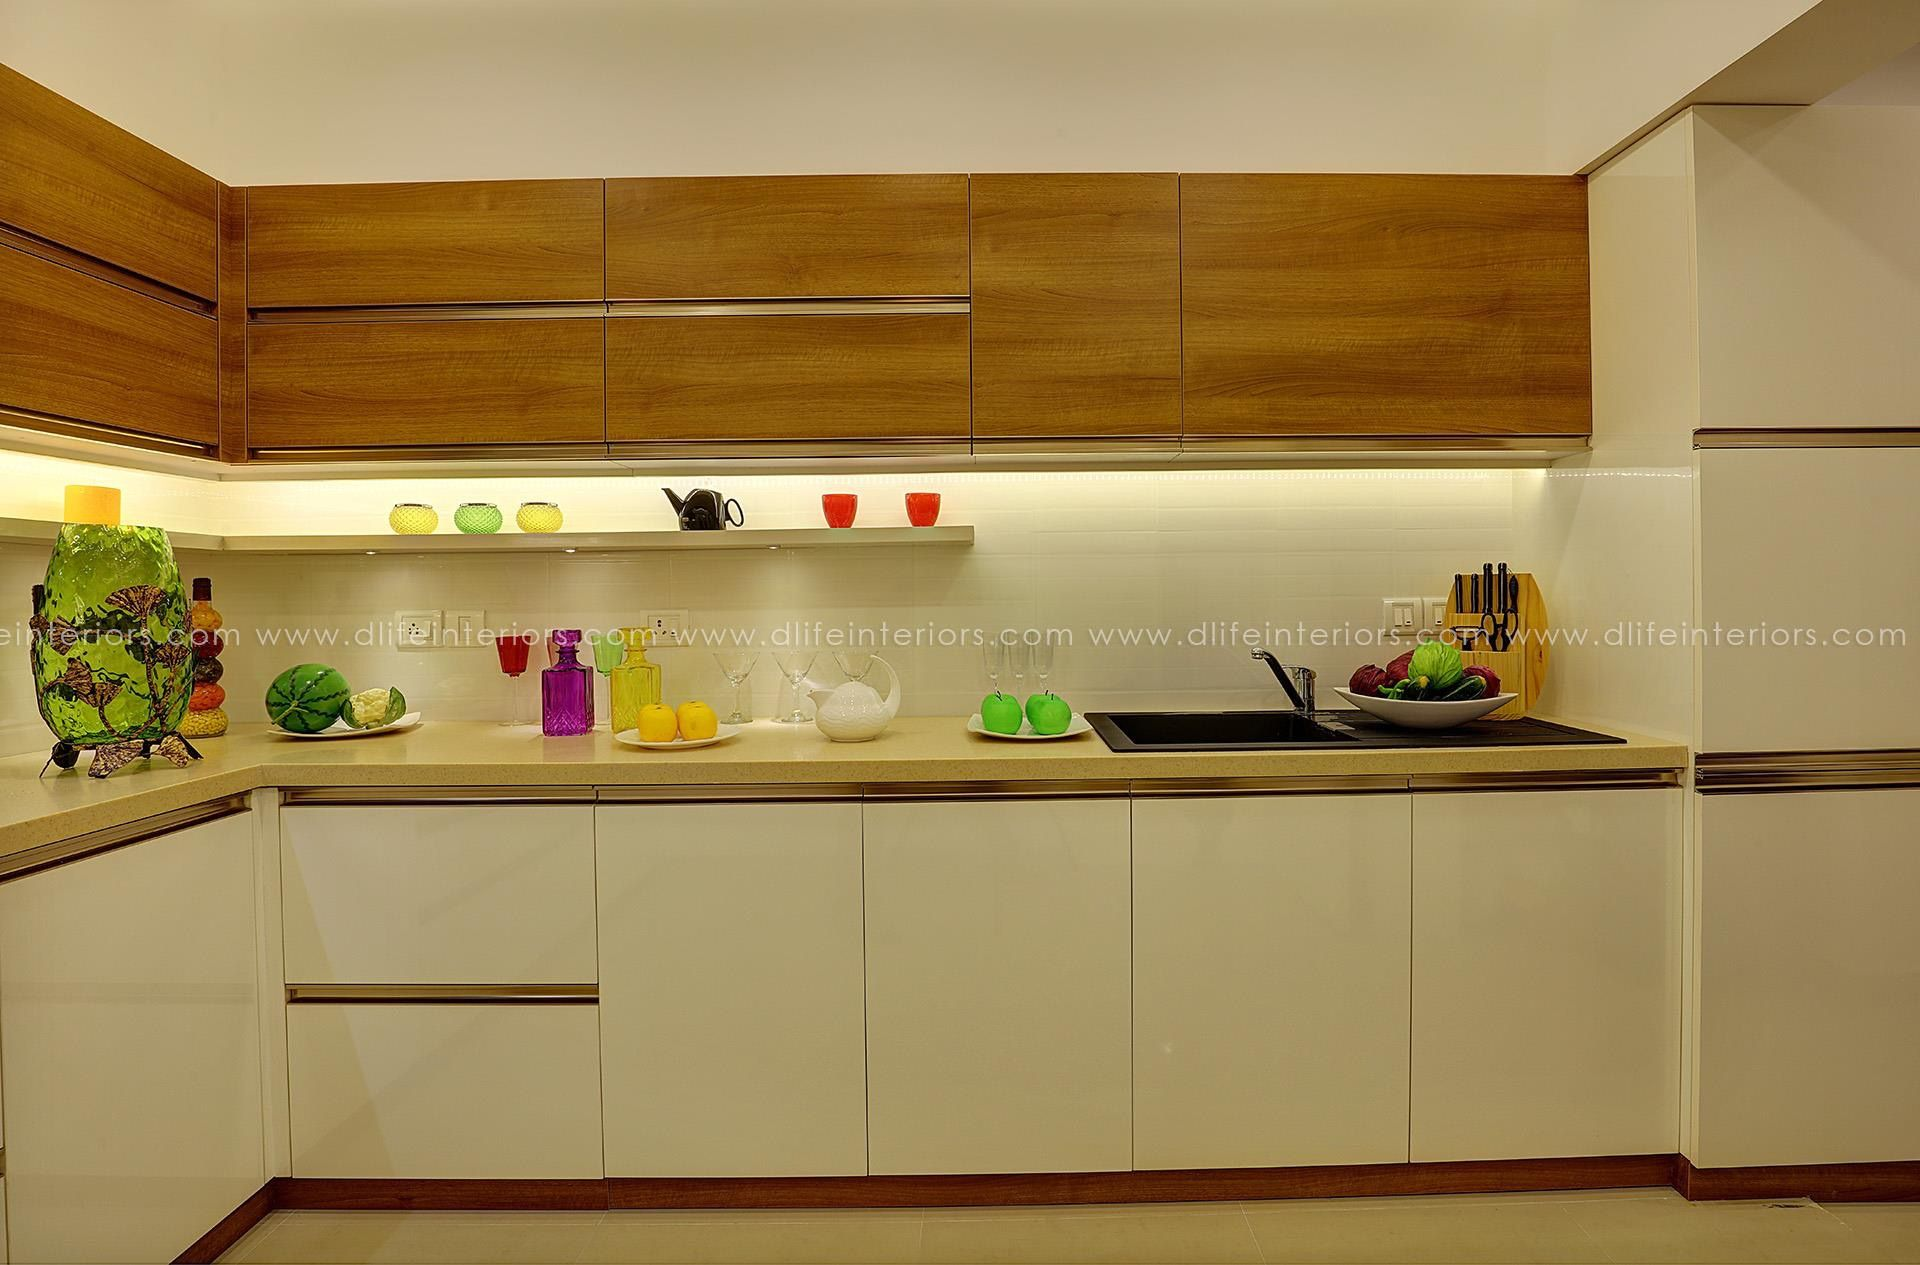 Best Pin By Noreen Thomas On Homedecor Home Decor Kitchen 400 x 300